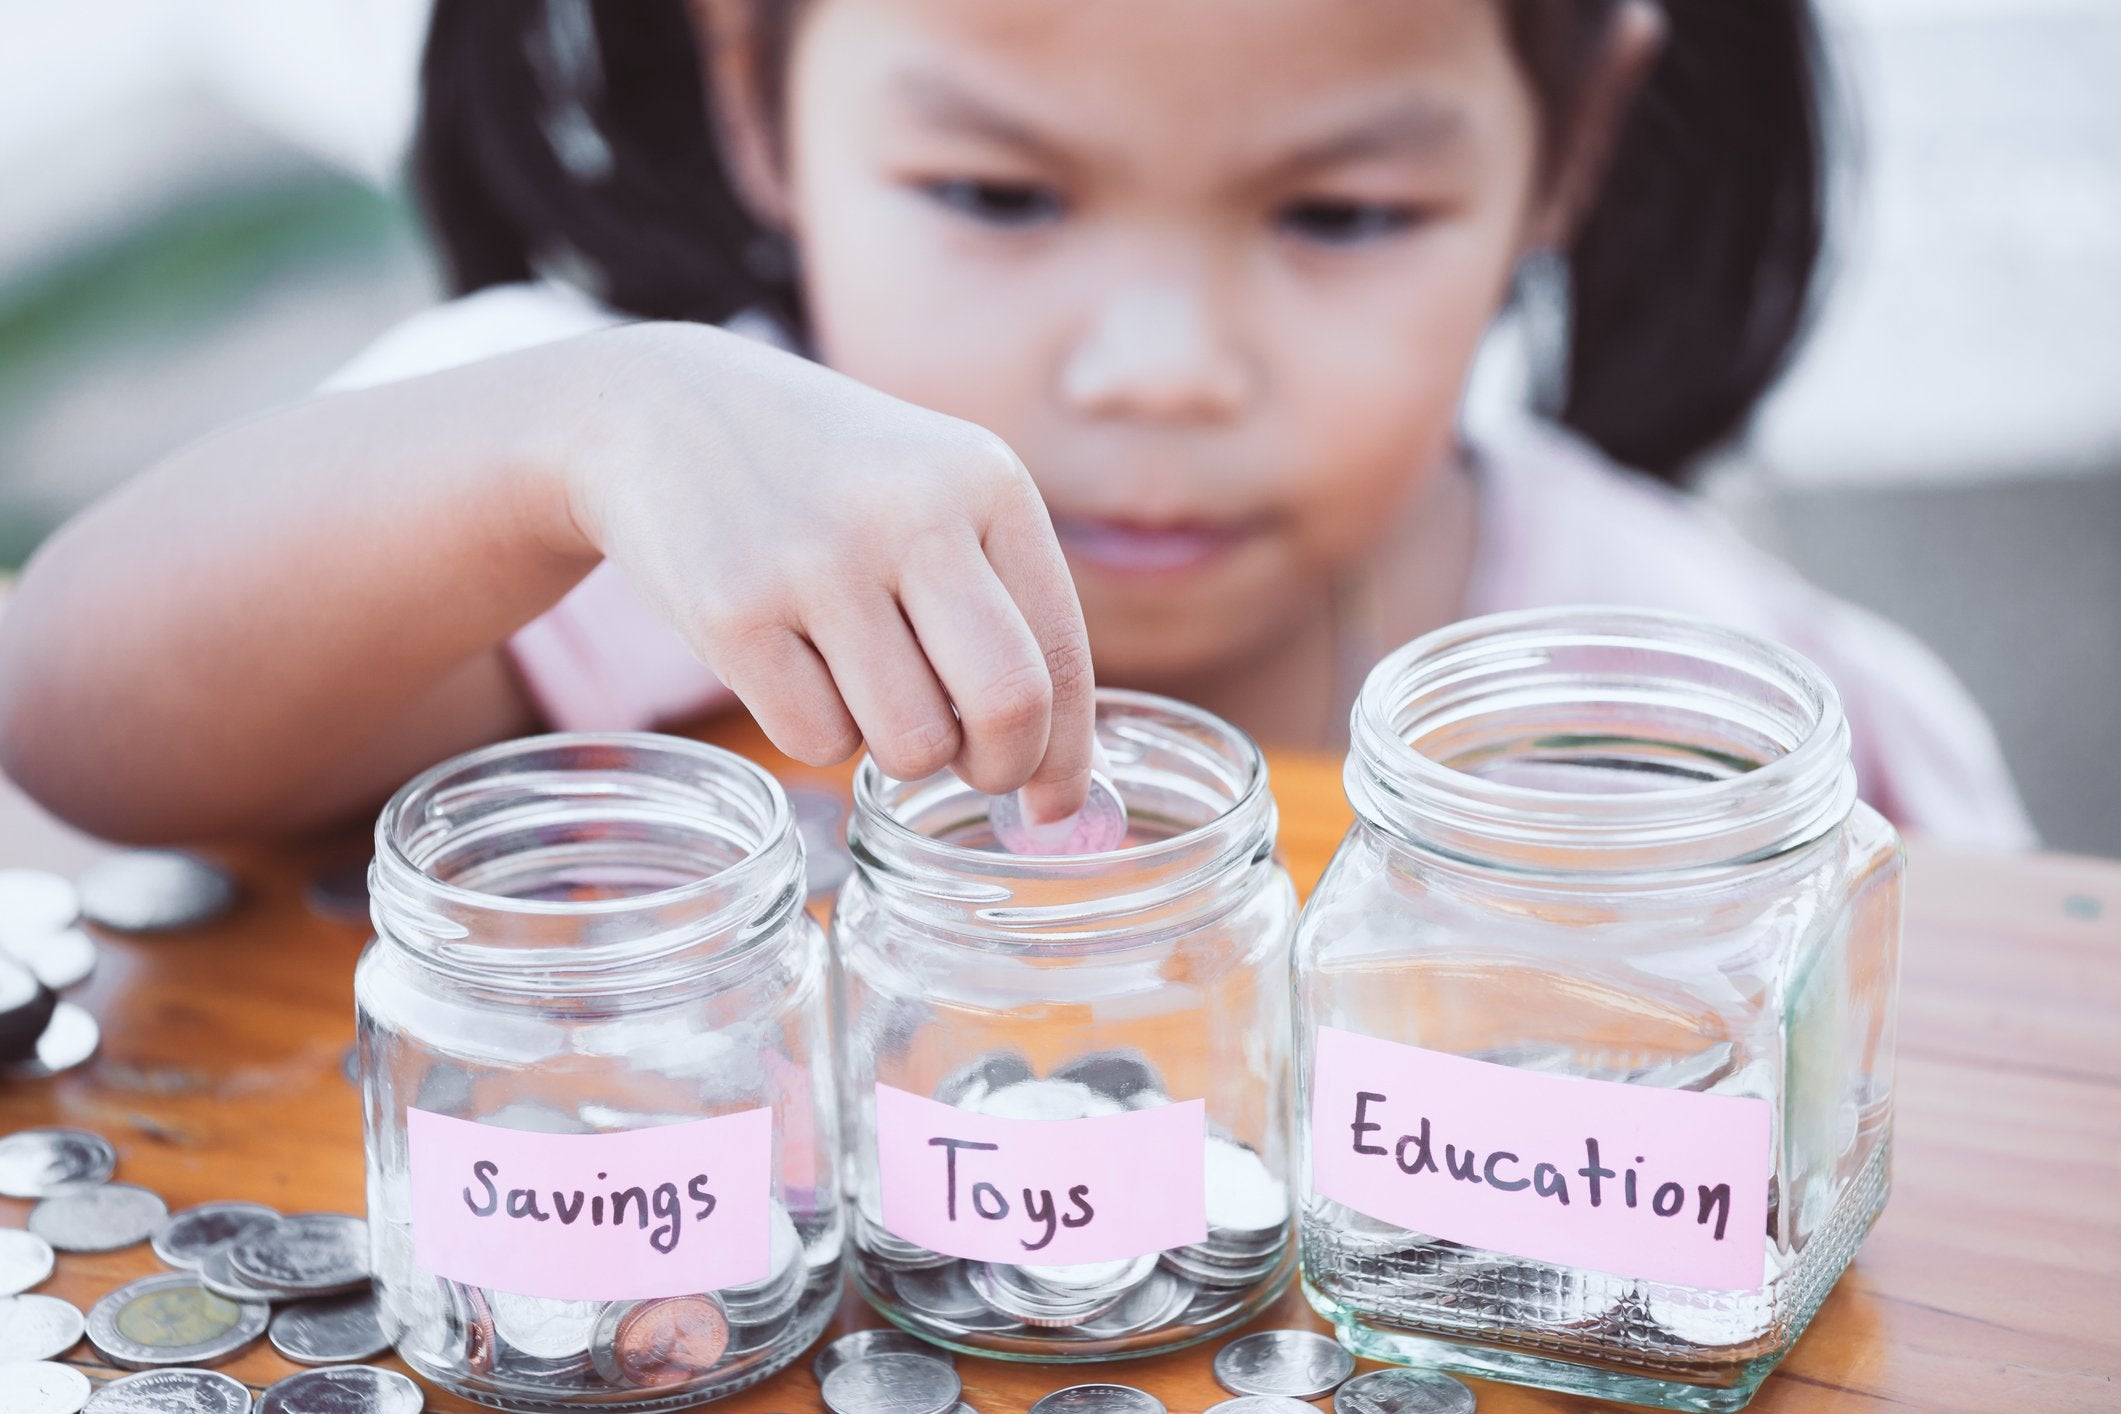 A small child depositing change into three jars labeled savings, toys, and education.